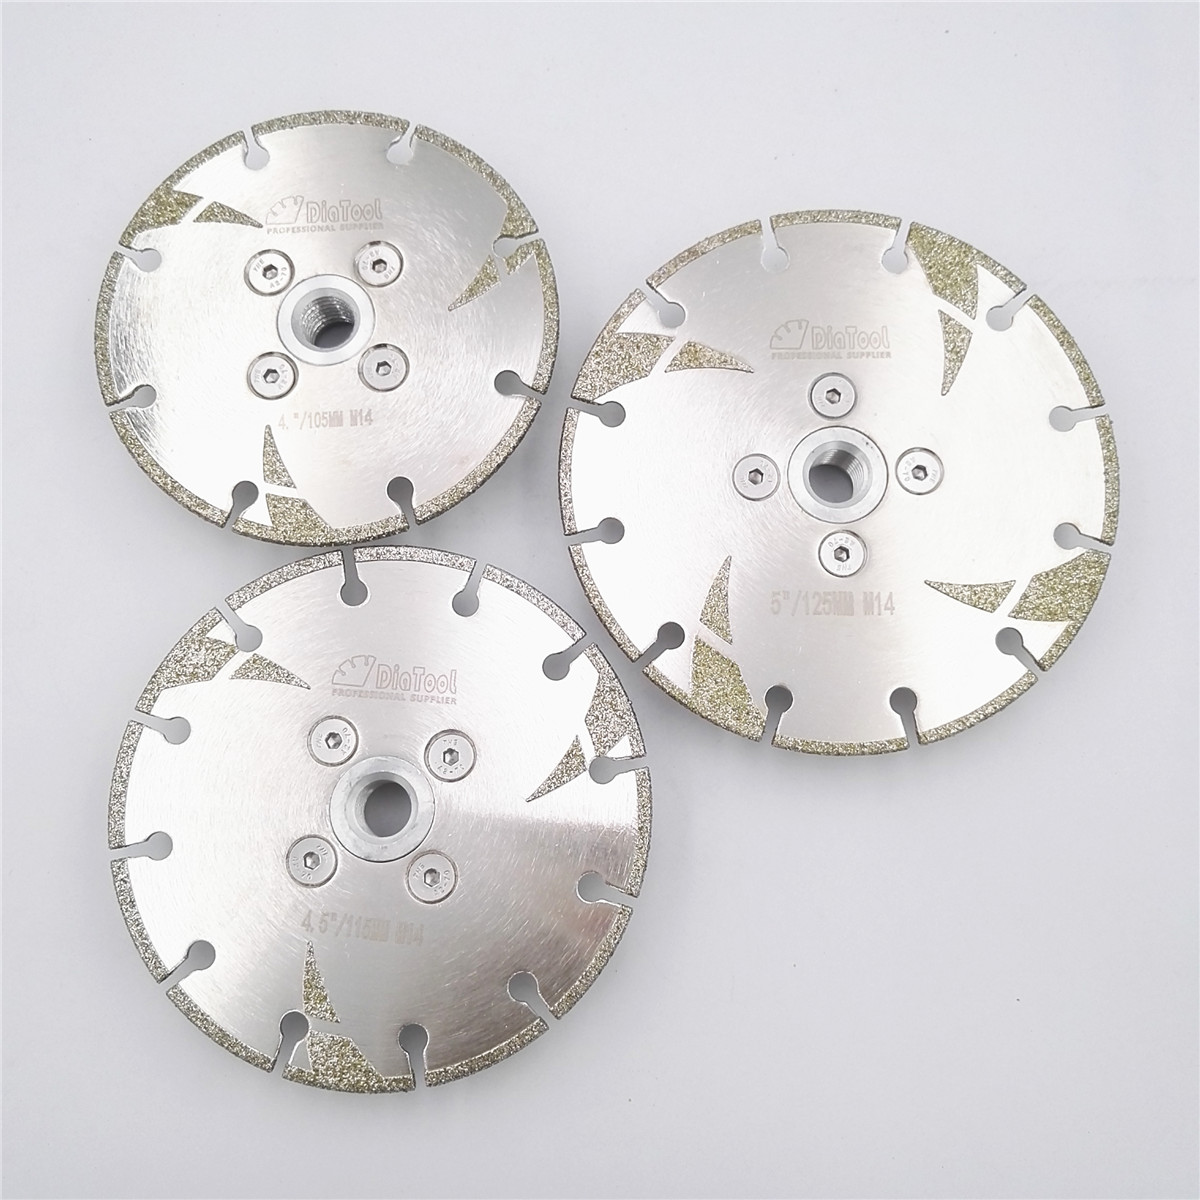 DIATOOL 1pc Electroplated Diamond Cutting & Grinding Disc M14 Flange With Protection Coated Diamond Blade Granite Marble цена